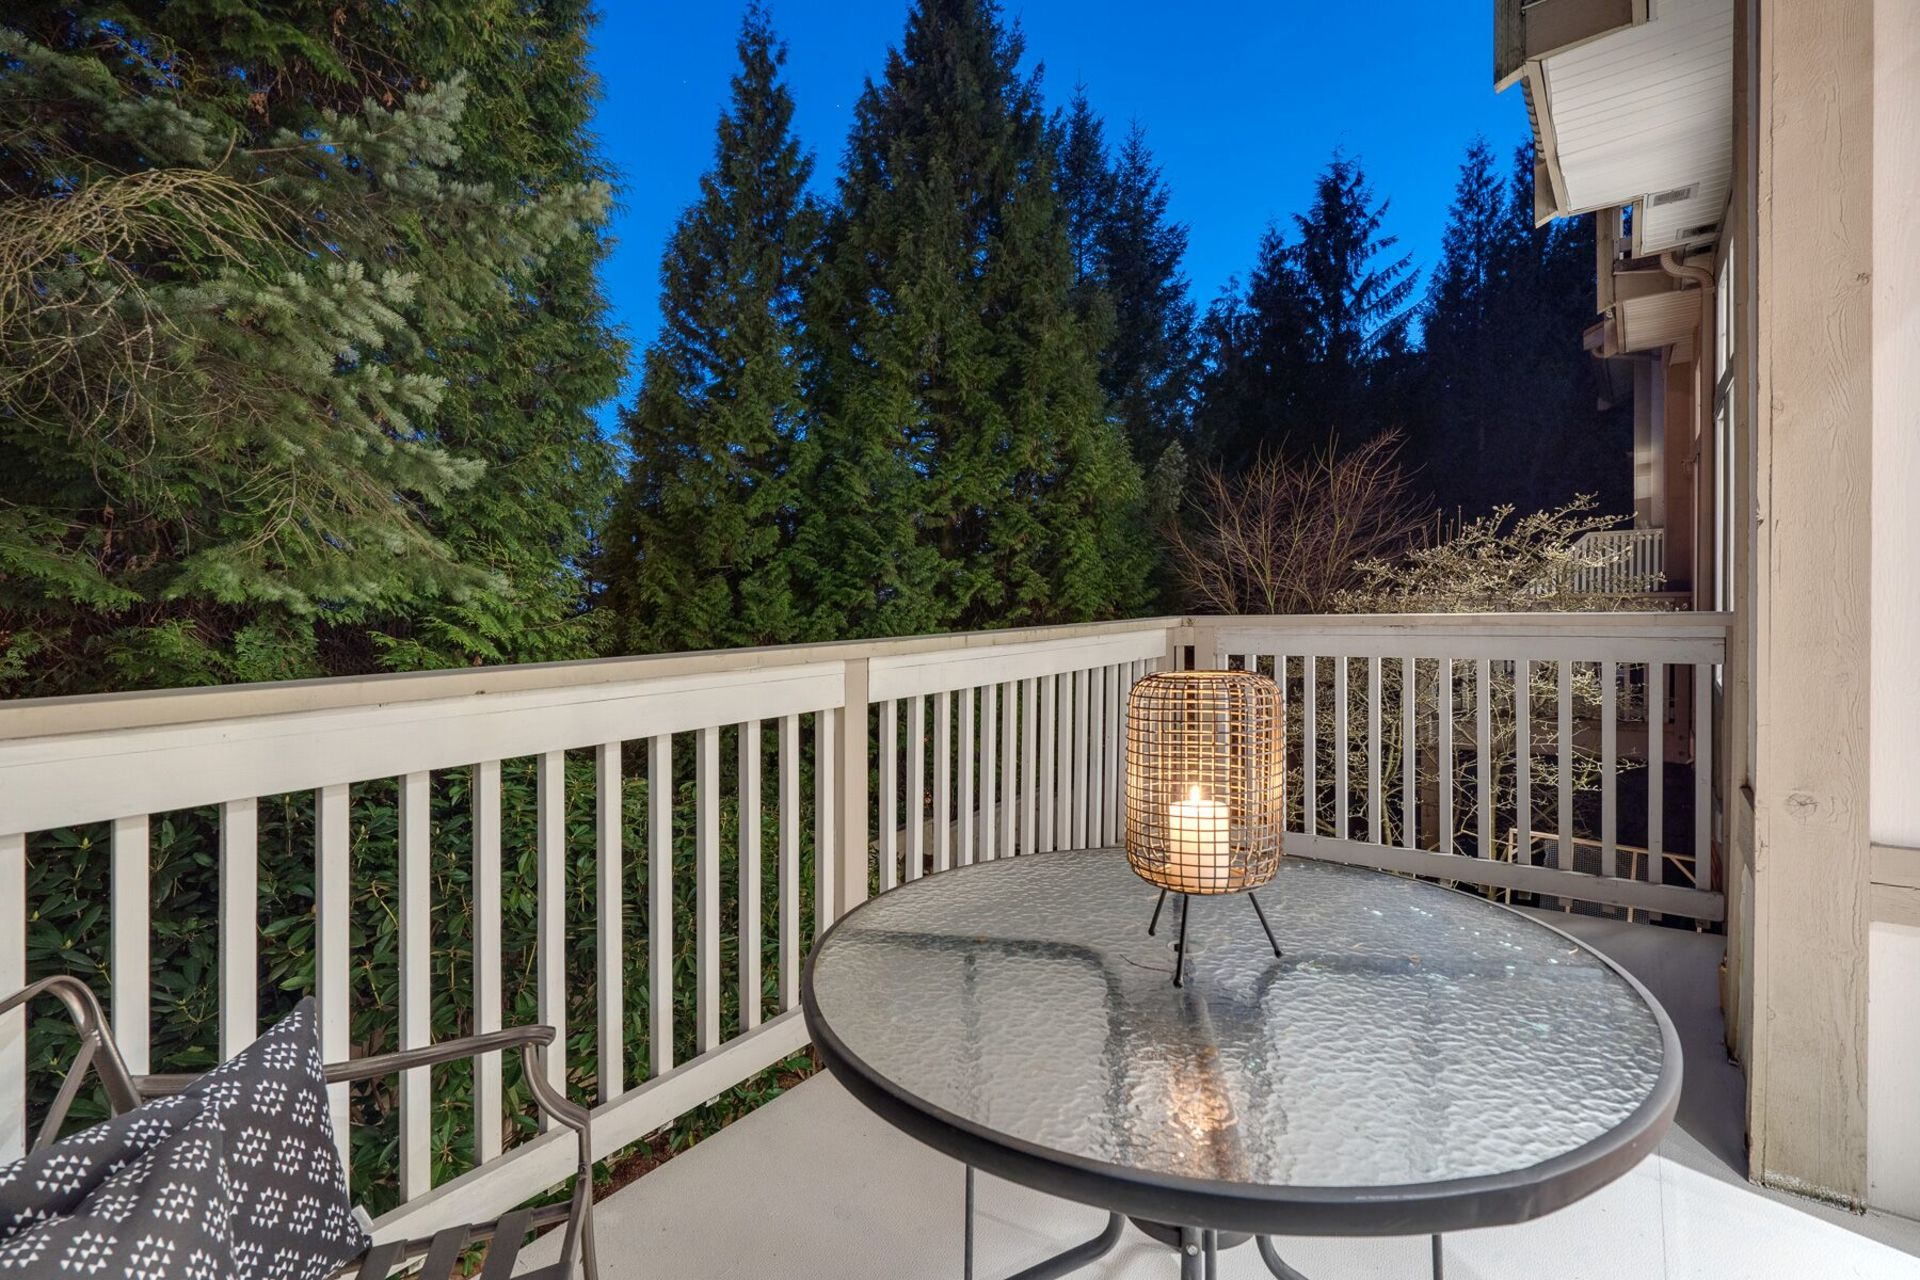 qcsswwna at 8 - 1 Aspenwood Drive, Heritage Woods PM, Port Moody